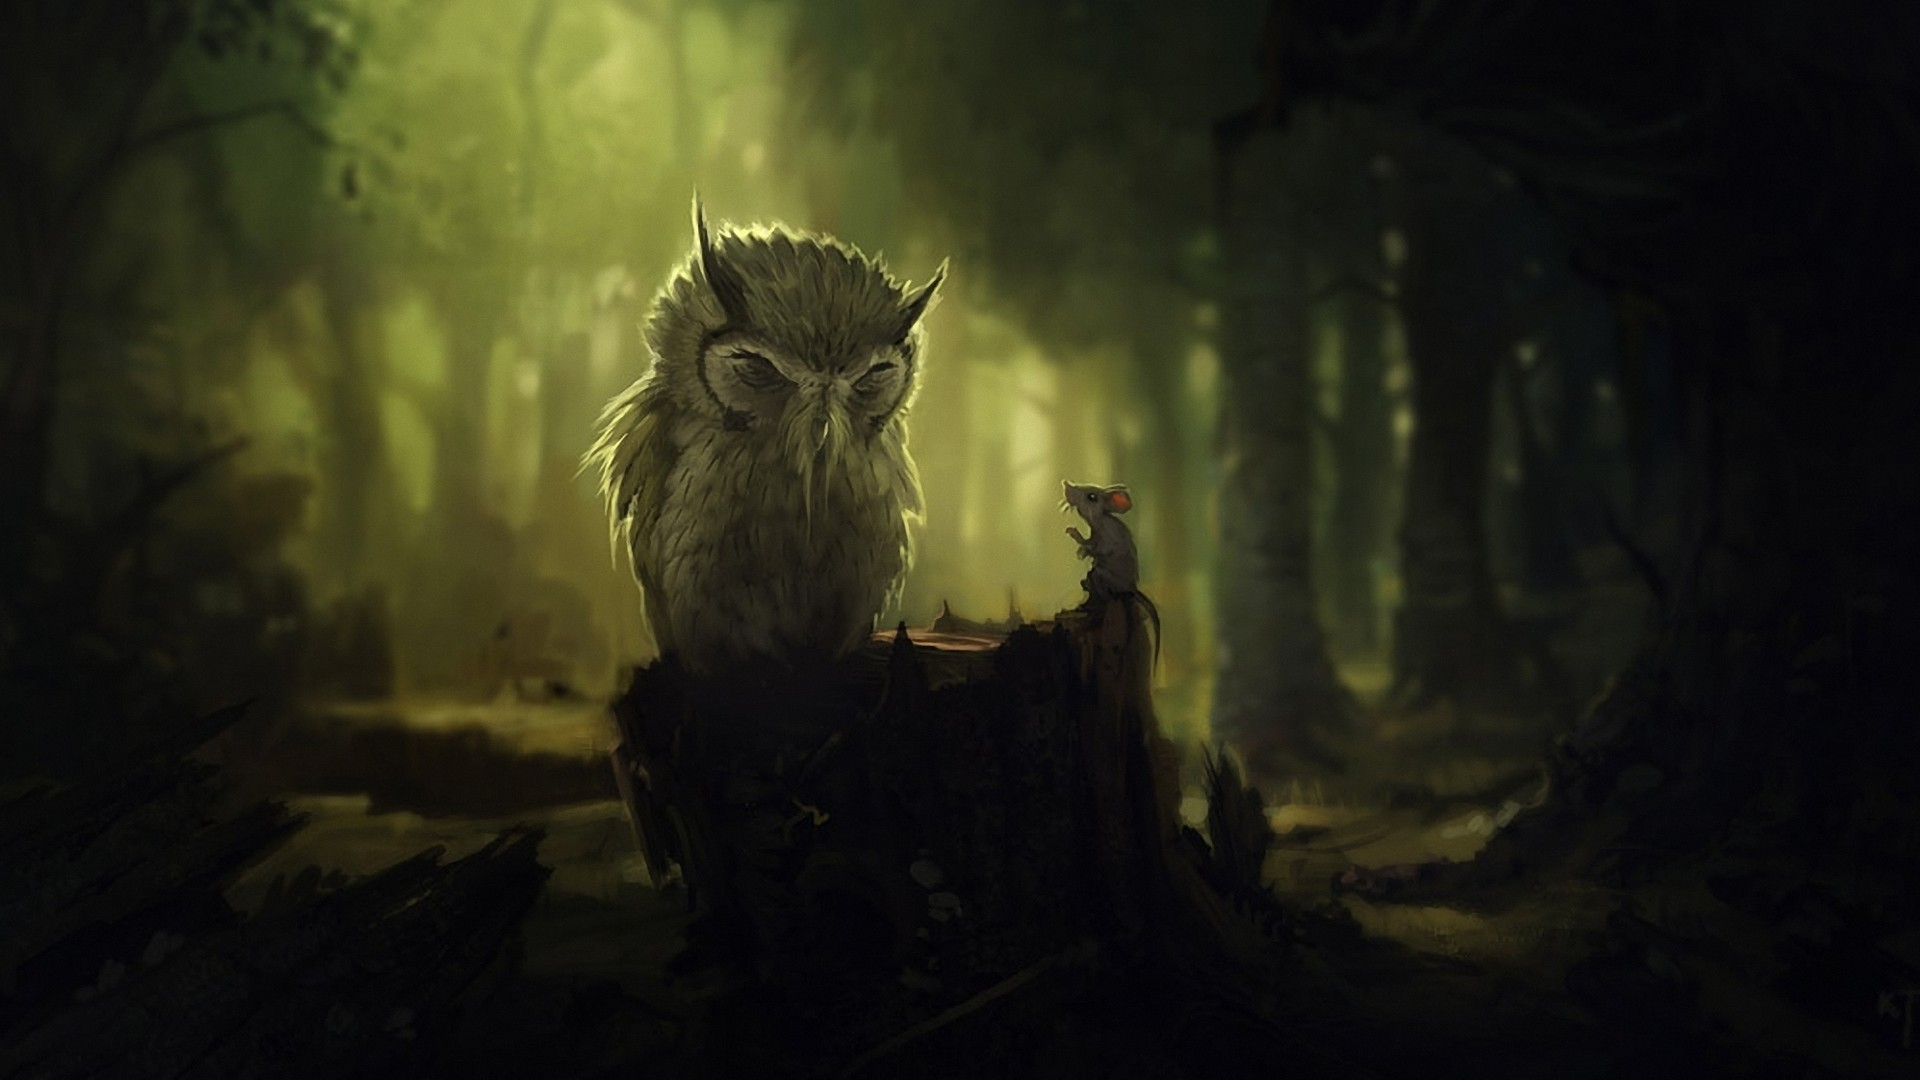 664 Owl HD Wallpapers Backgrounds Wallpaper Abyss Page 2